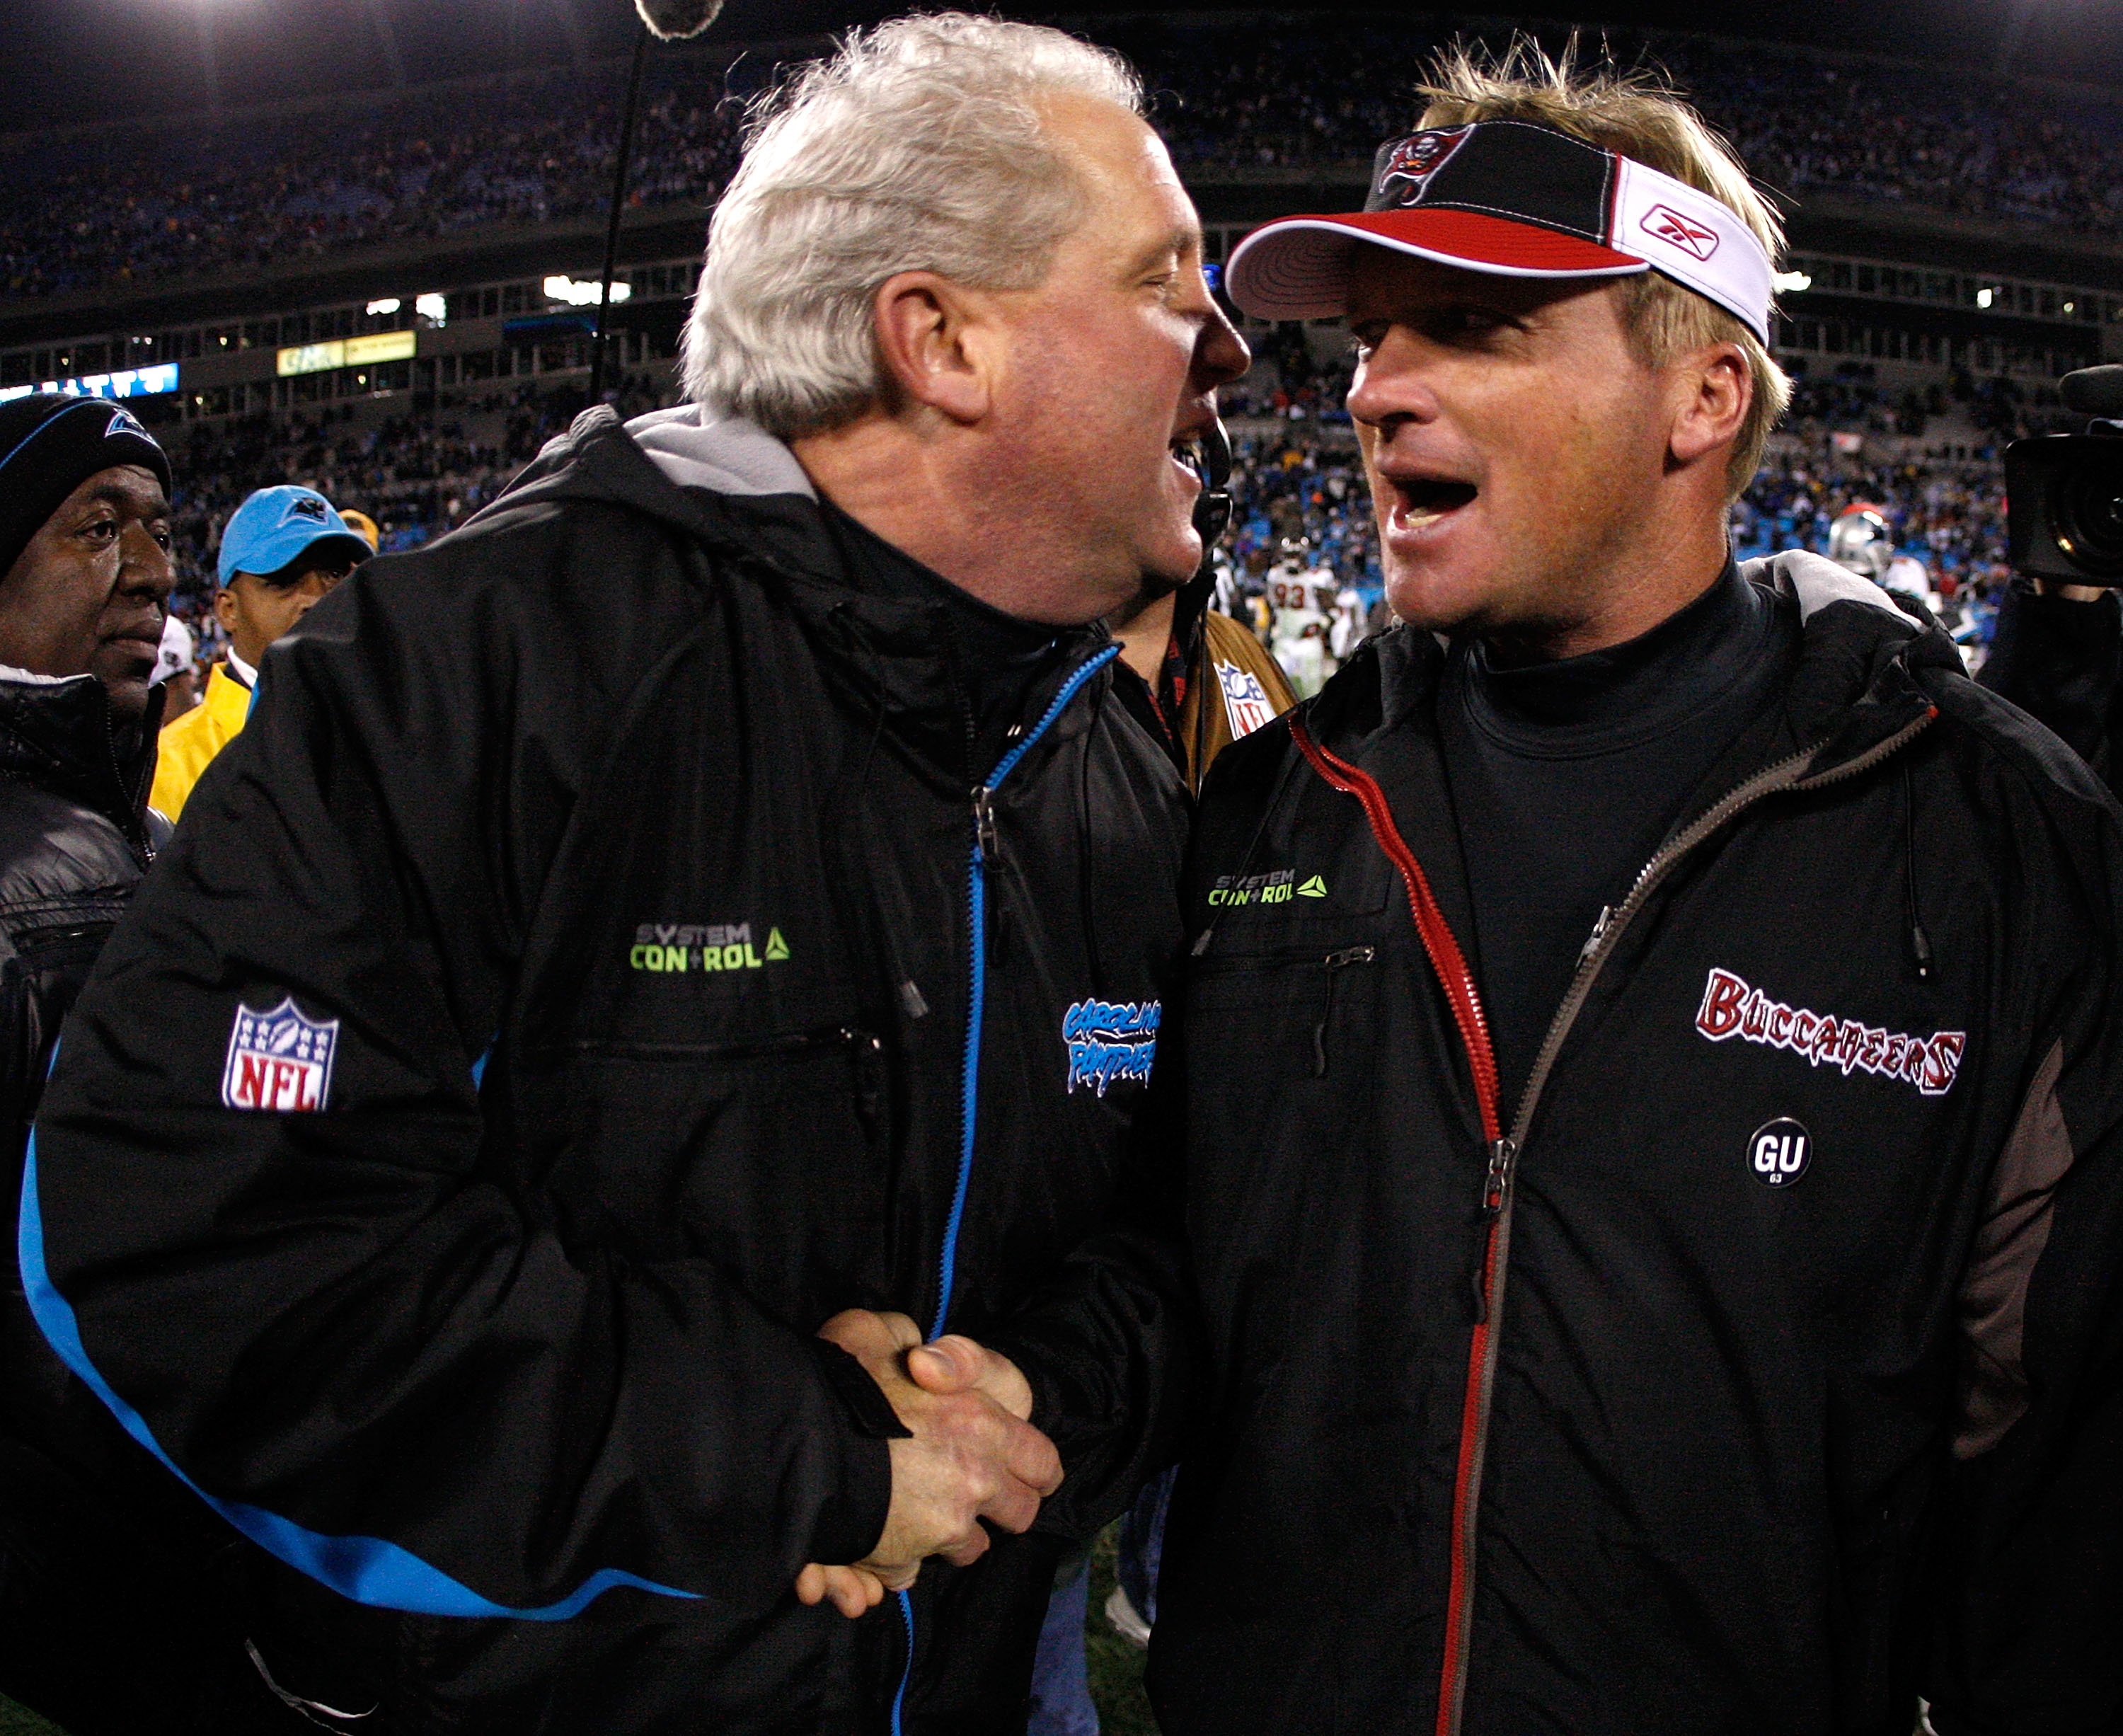 CHARLOTTE, NC - DECEMBER 08:  Head coach Jon Gruden (R) of the Tampa Bay Buccaneers shakes hands with head coach John Fox (L) of the Carolina Panthers after the game at Bank of America Stadium on December 8, 2008 in Charlotte, North Carolina.  (Photo by S